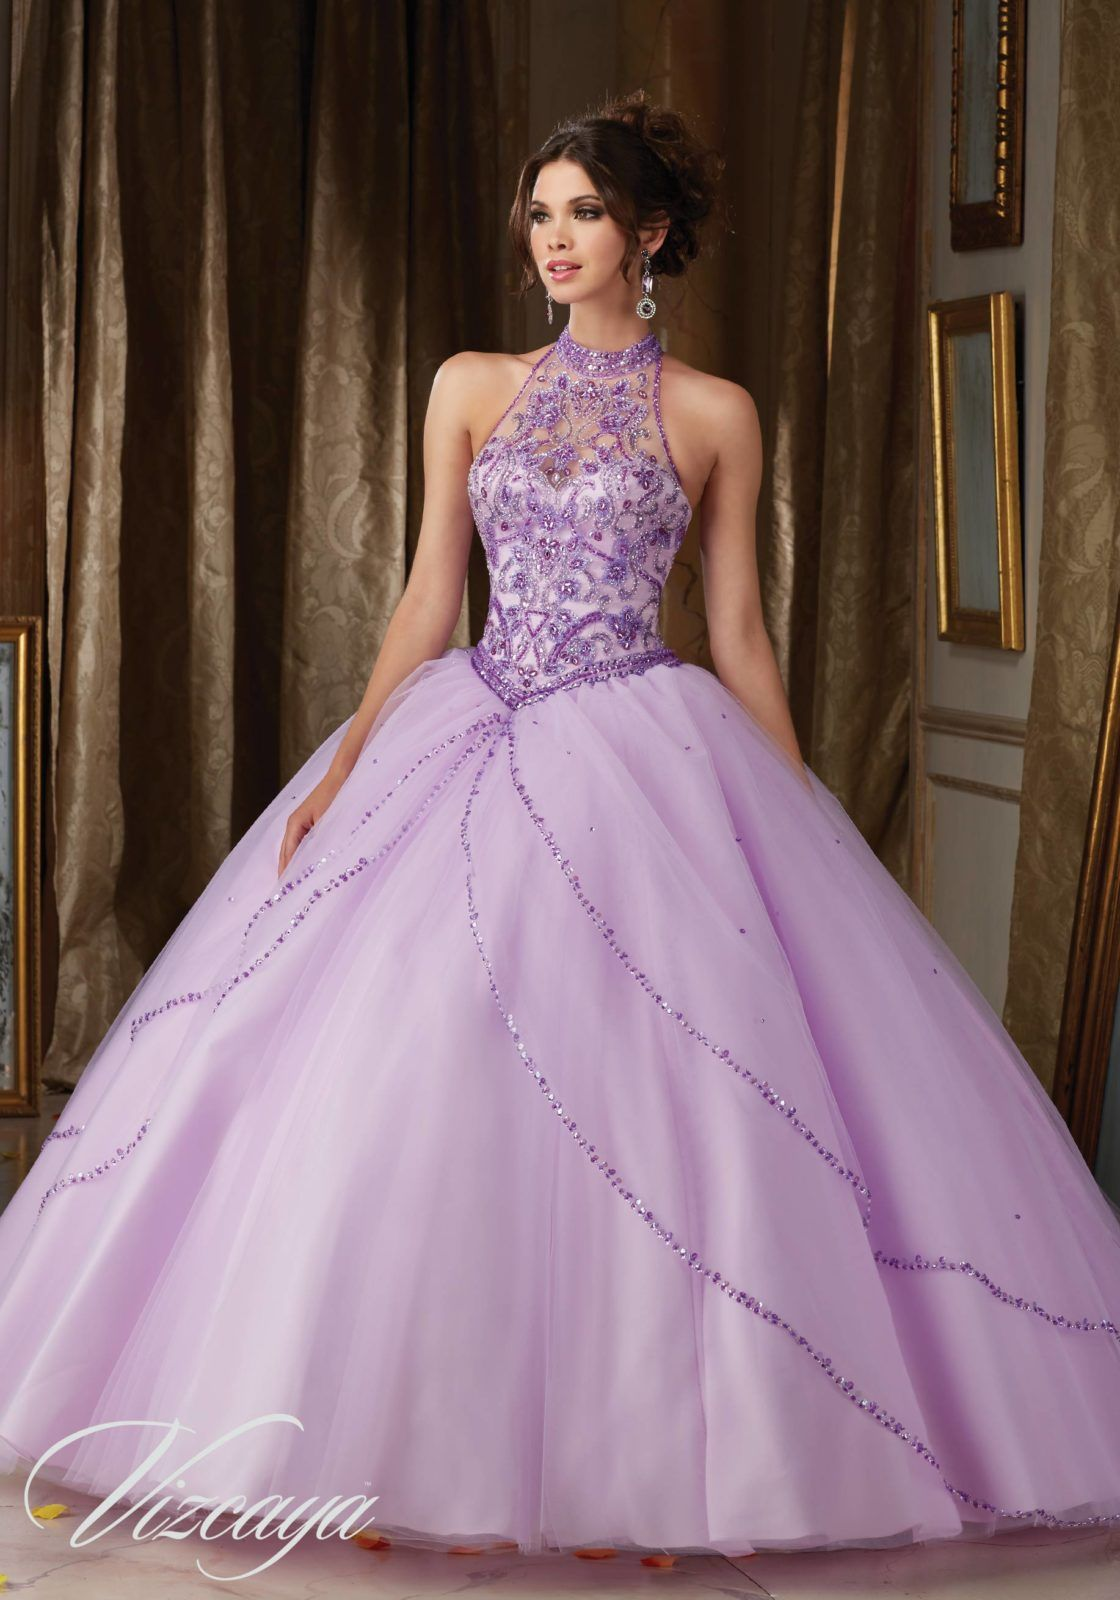 2019 year style- Dresses purple for quinceanera photo